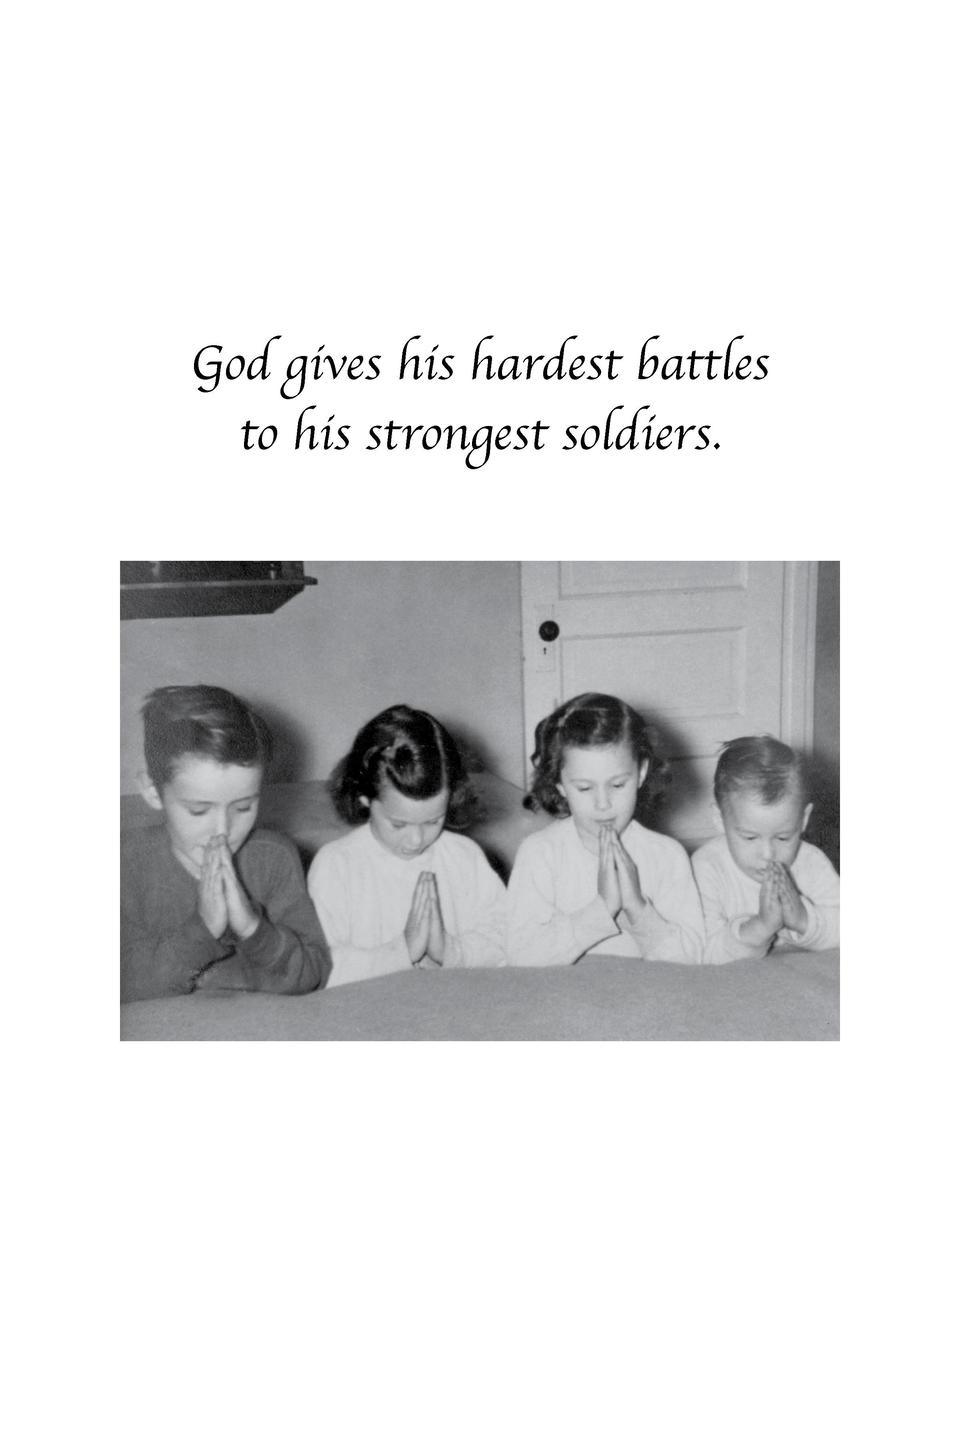 God gives his hardest battles to his strongest soldiers.